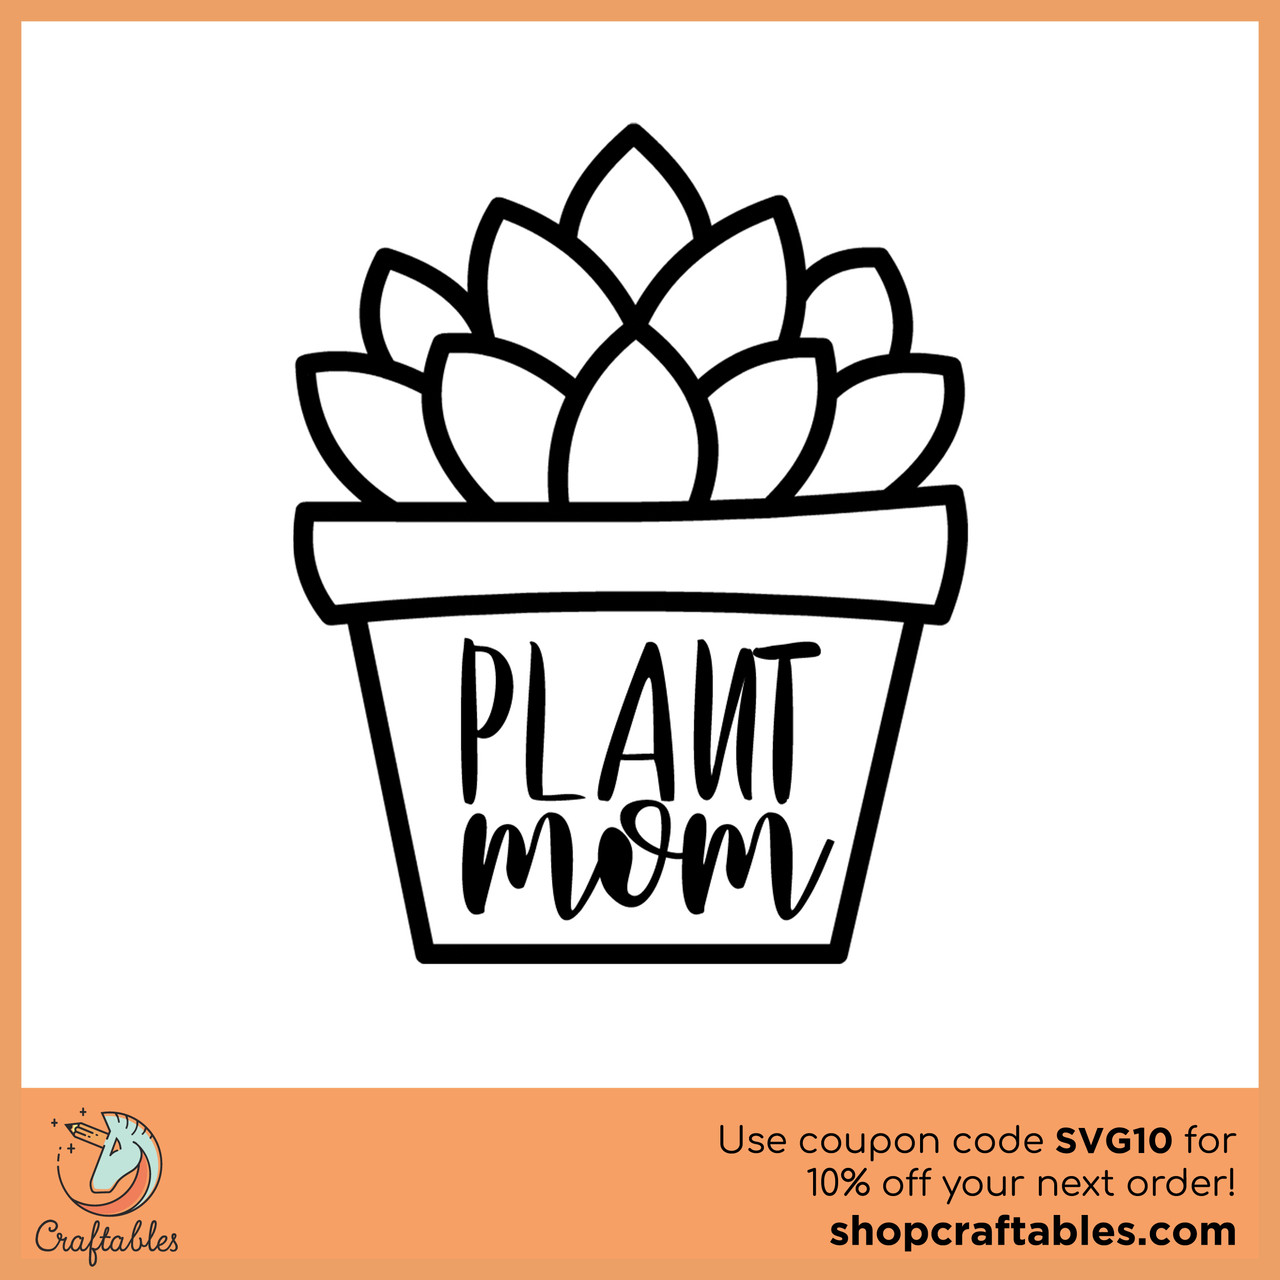 Download Free Plant-Mom SVG Cut File| Craftables